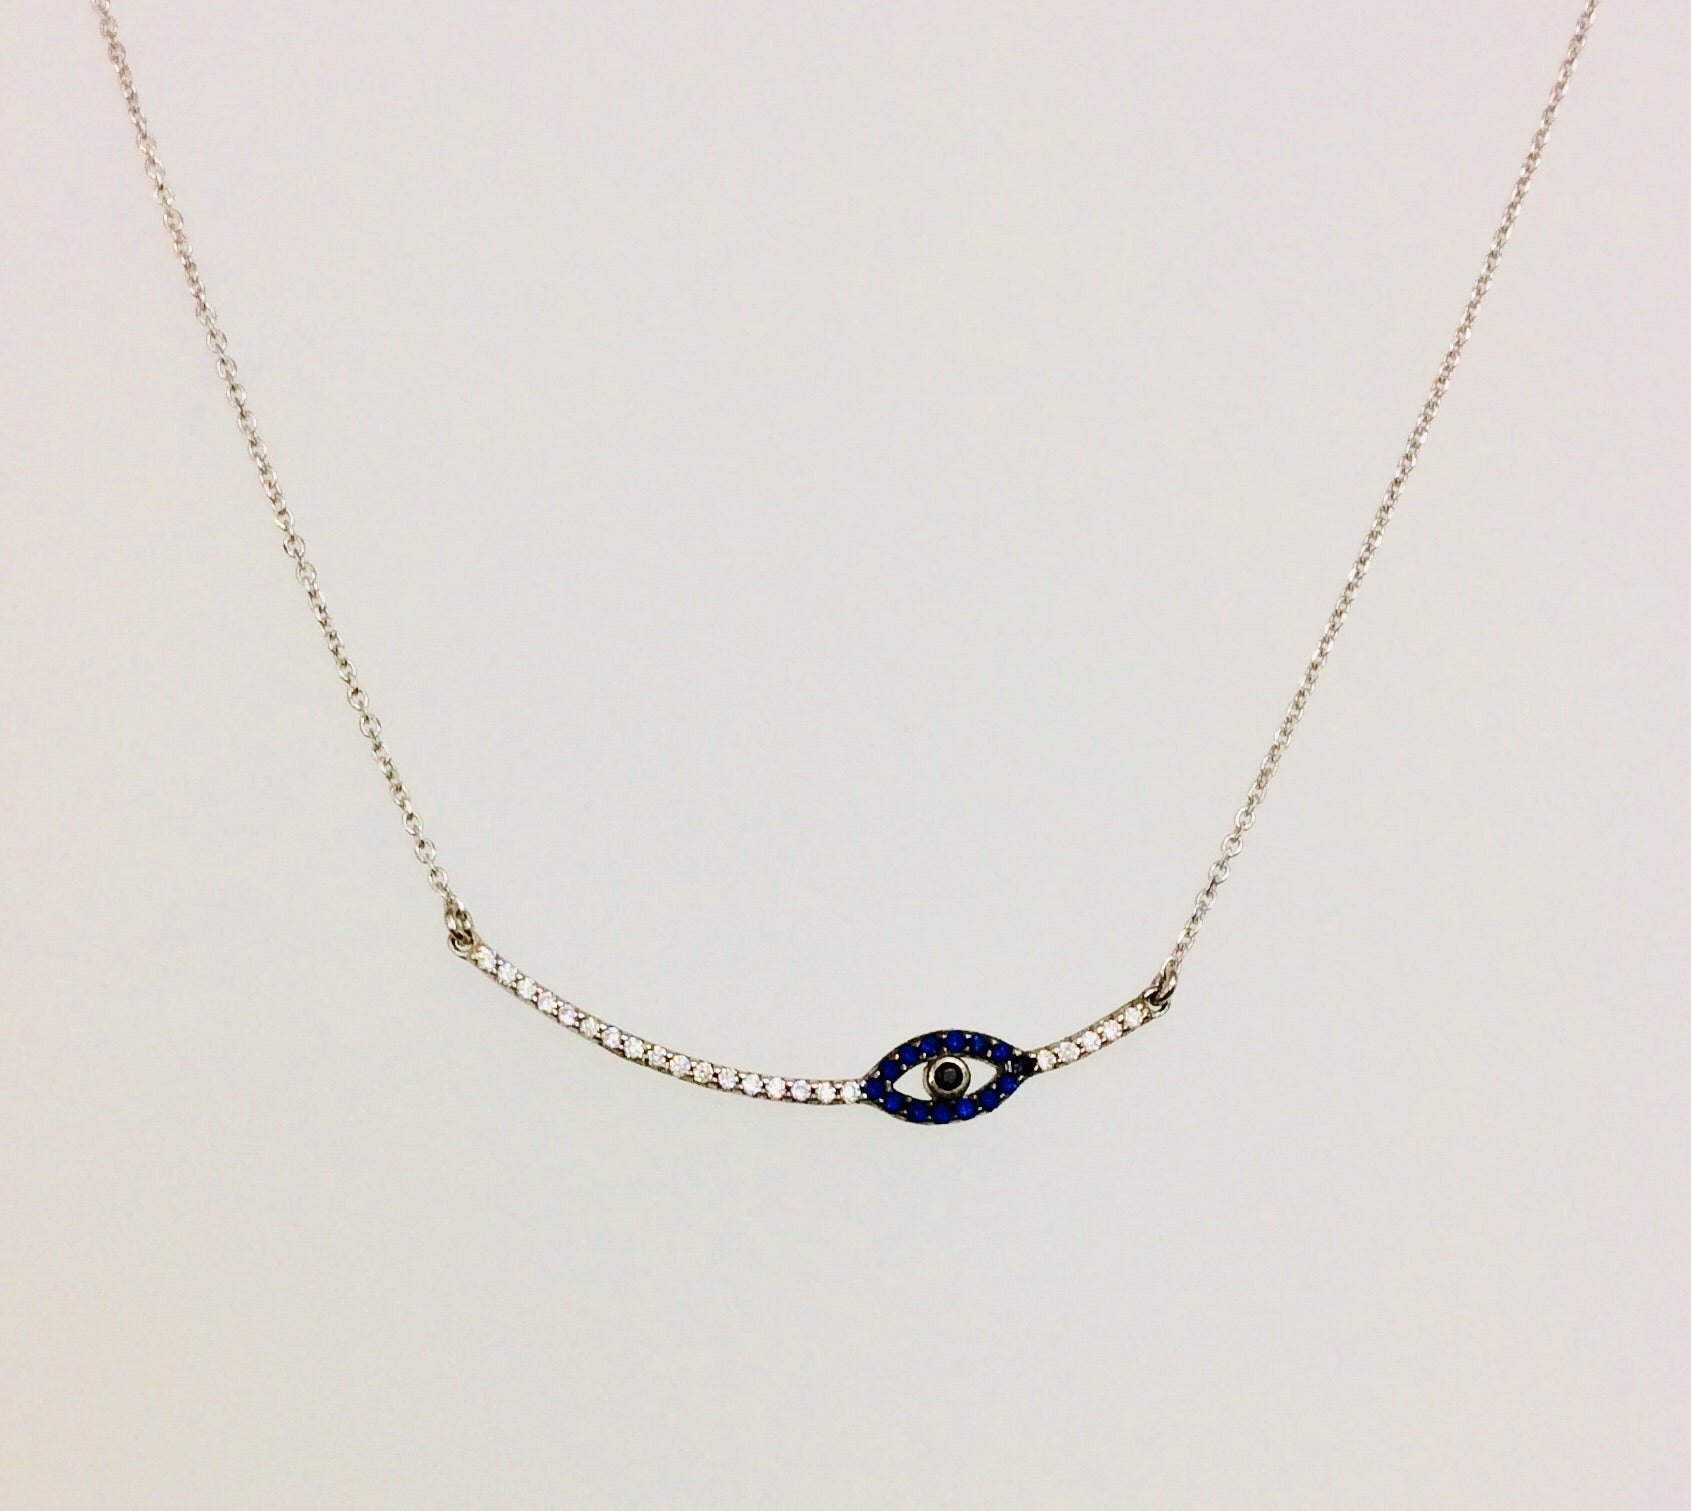 SLEEK MATI NECKLACE